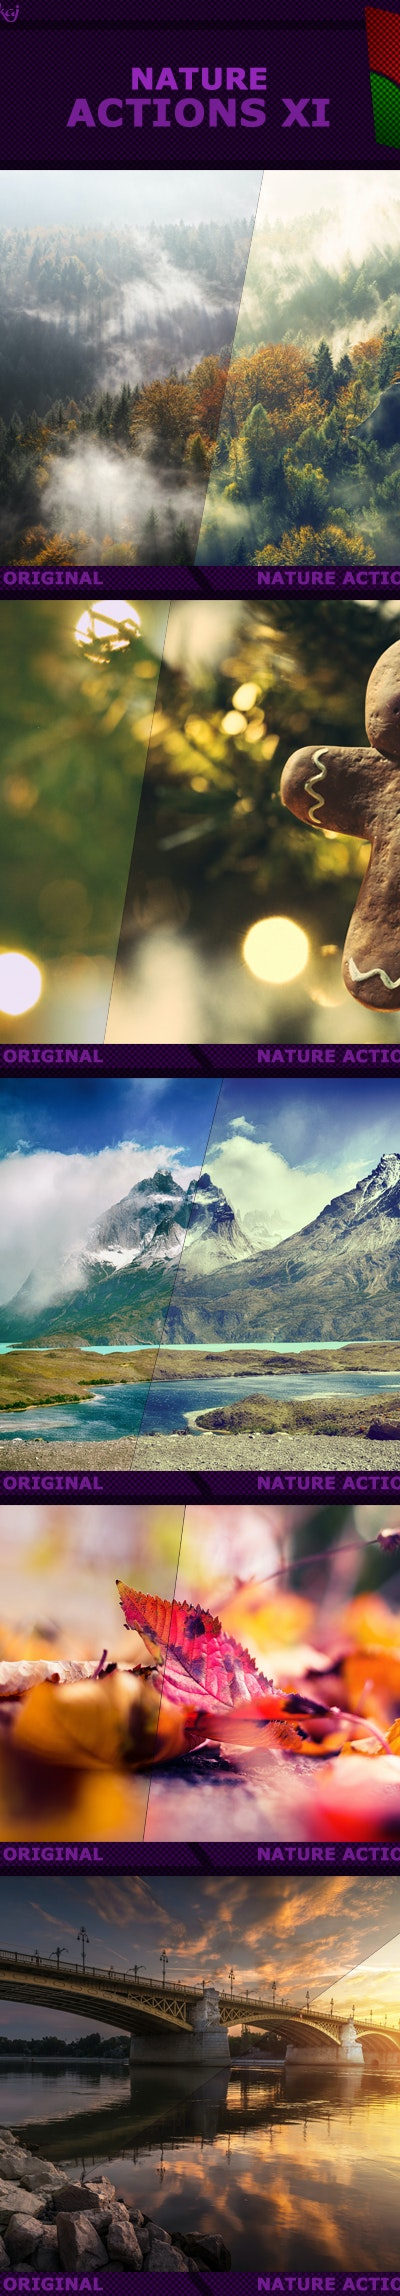 Nature%2Bactions%2BXI